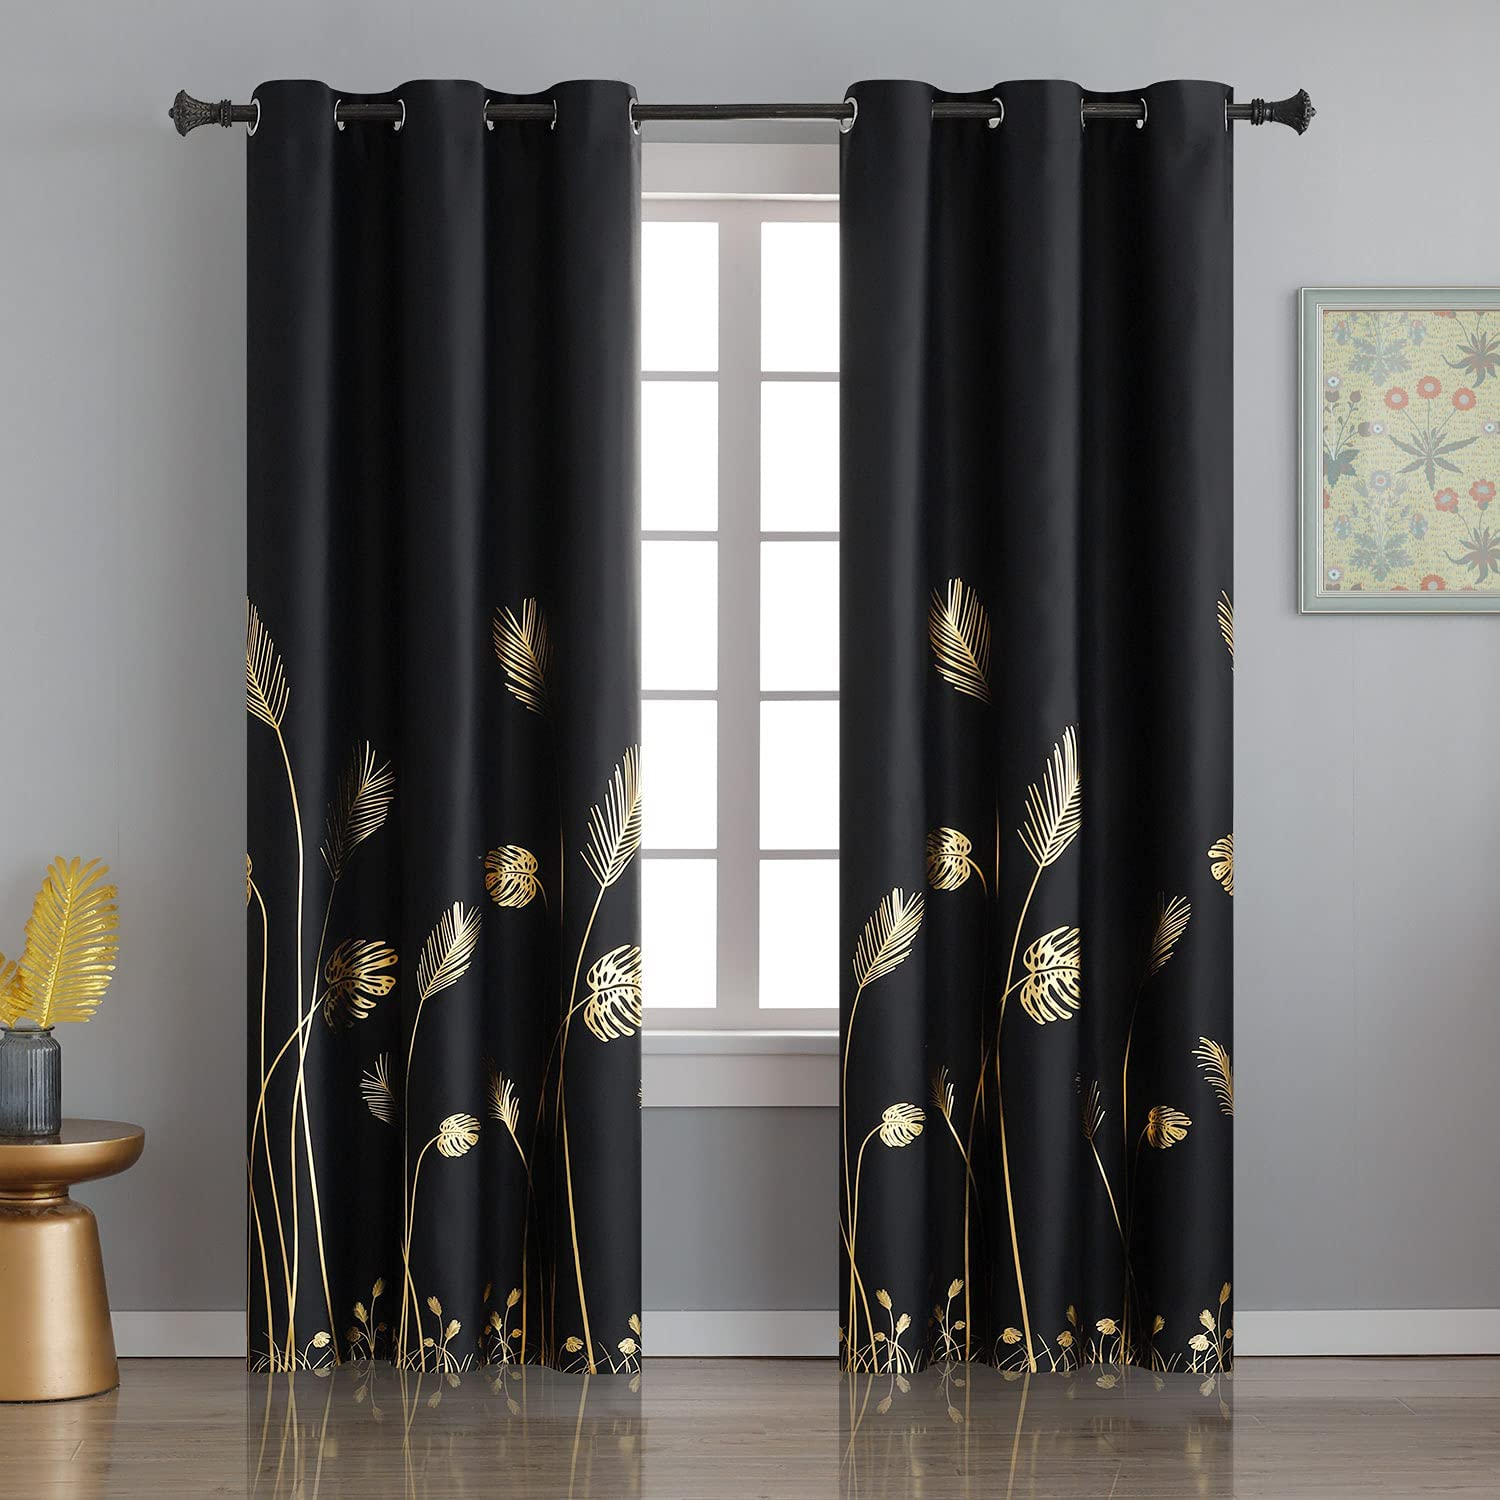 Estelar Ranking TOP14 Max 55% OFF Textiler Blackout Curtains 84 Inches Long 2 Room Panels